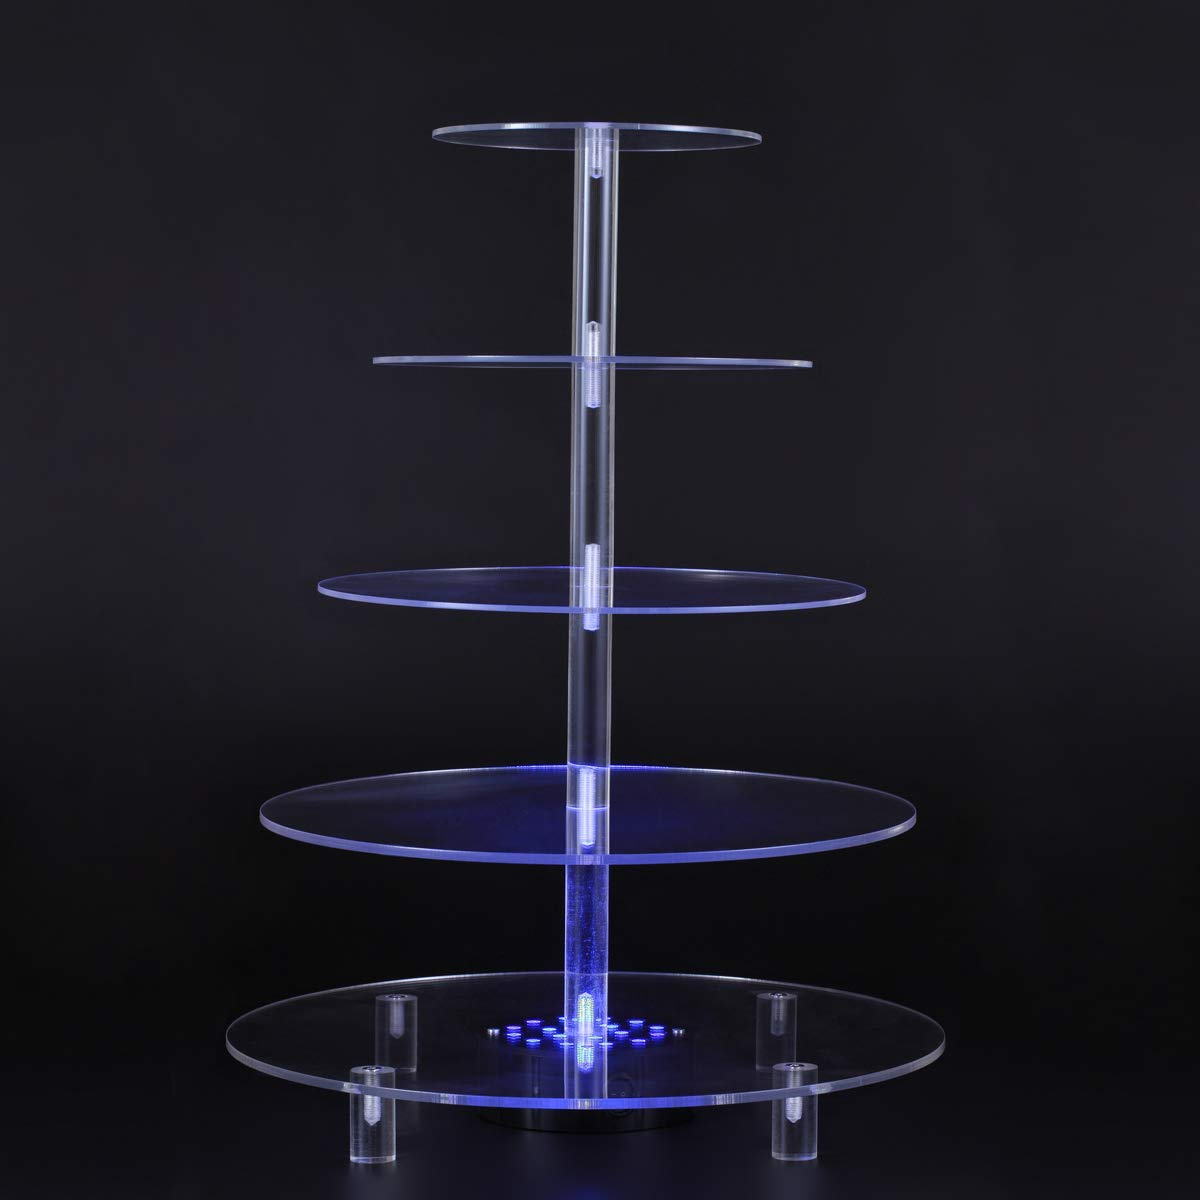 BonNoces 5 Tiers Round Cupcake Stand with LED Light - Clear Acrylic Cake Dessert Stand - Tiered Pastry Tree Tower with Base for Wedding, Birthday Party